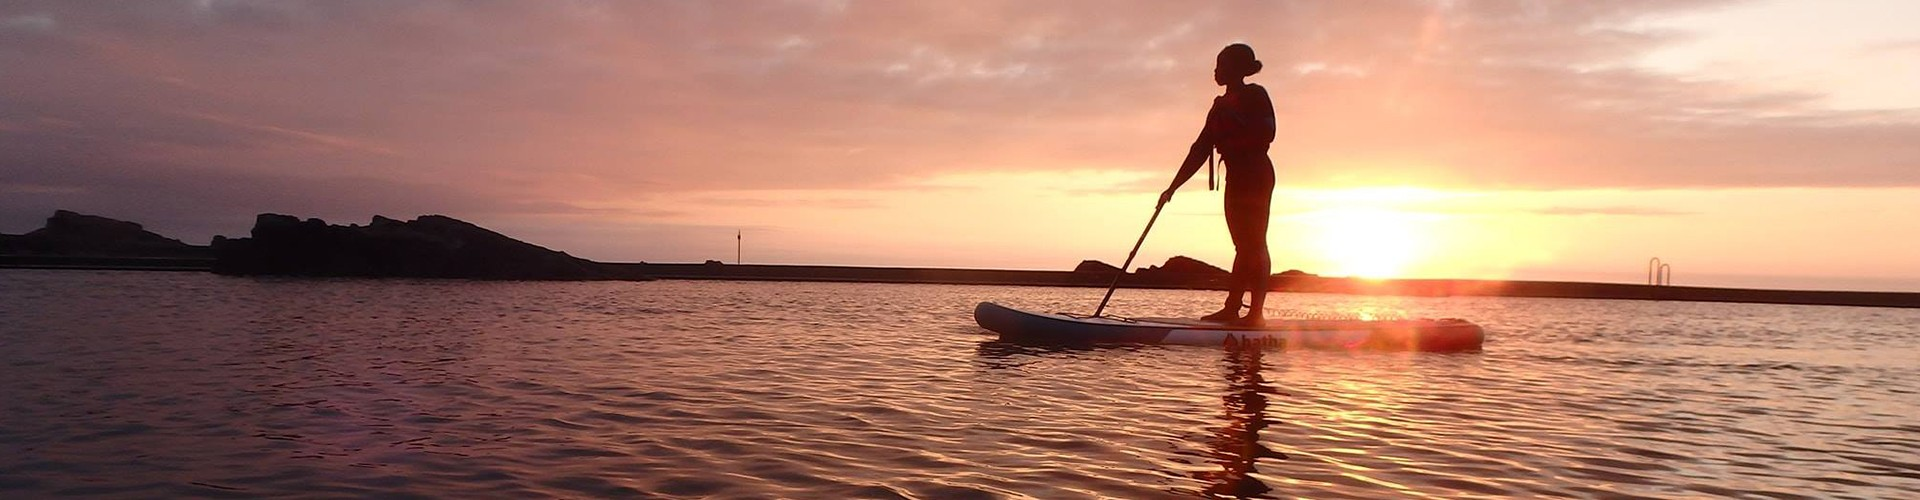 Person on a paddleboard at sunset at Bude sea pool